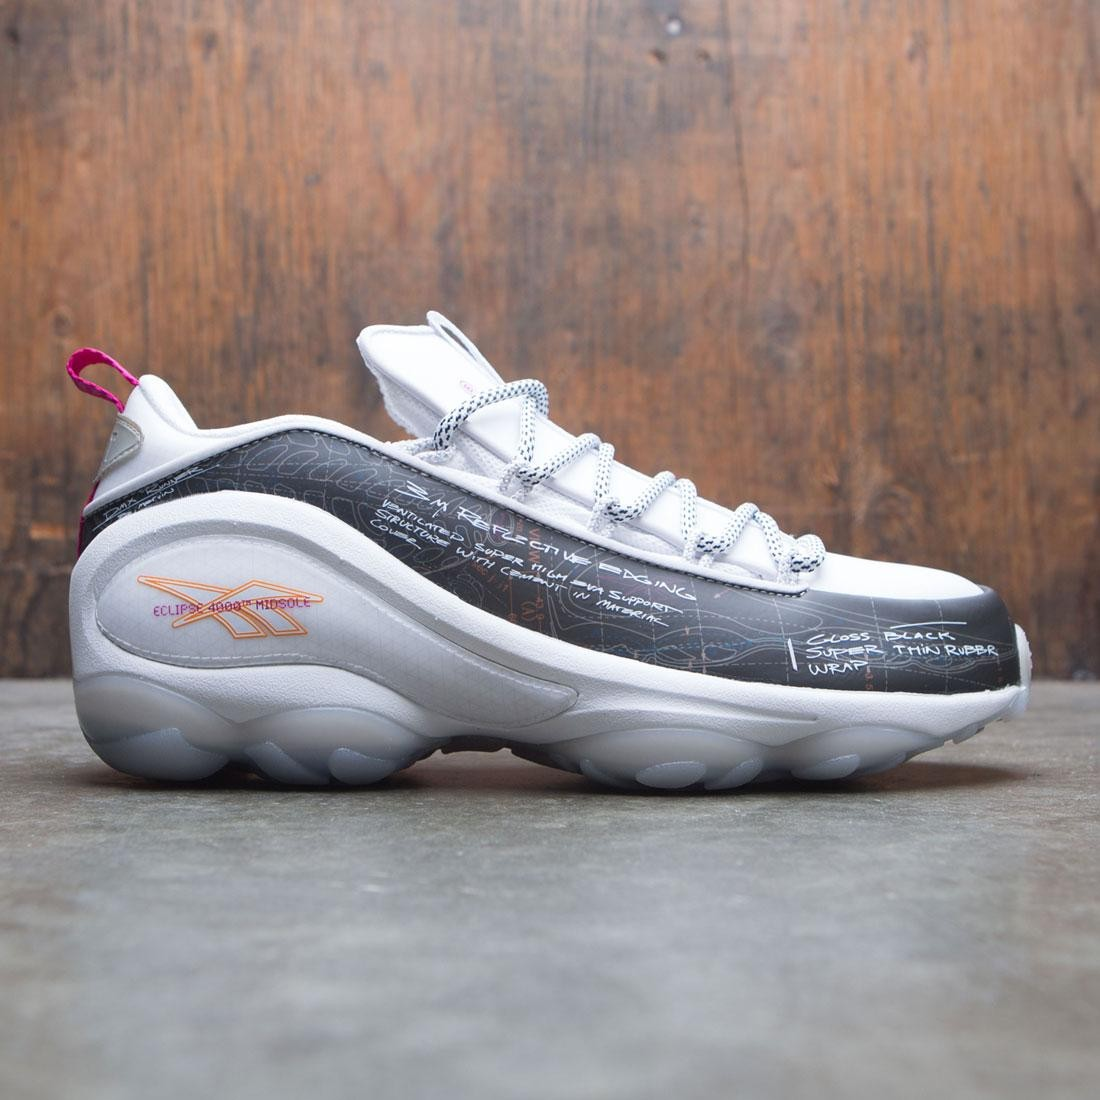 BAIT x Reebok Men DMX Run 10 (black / ash gray)